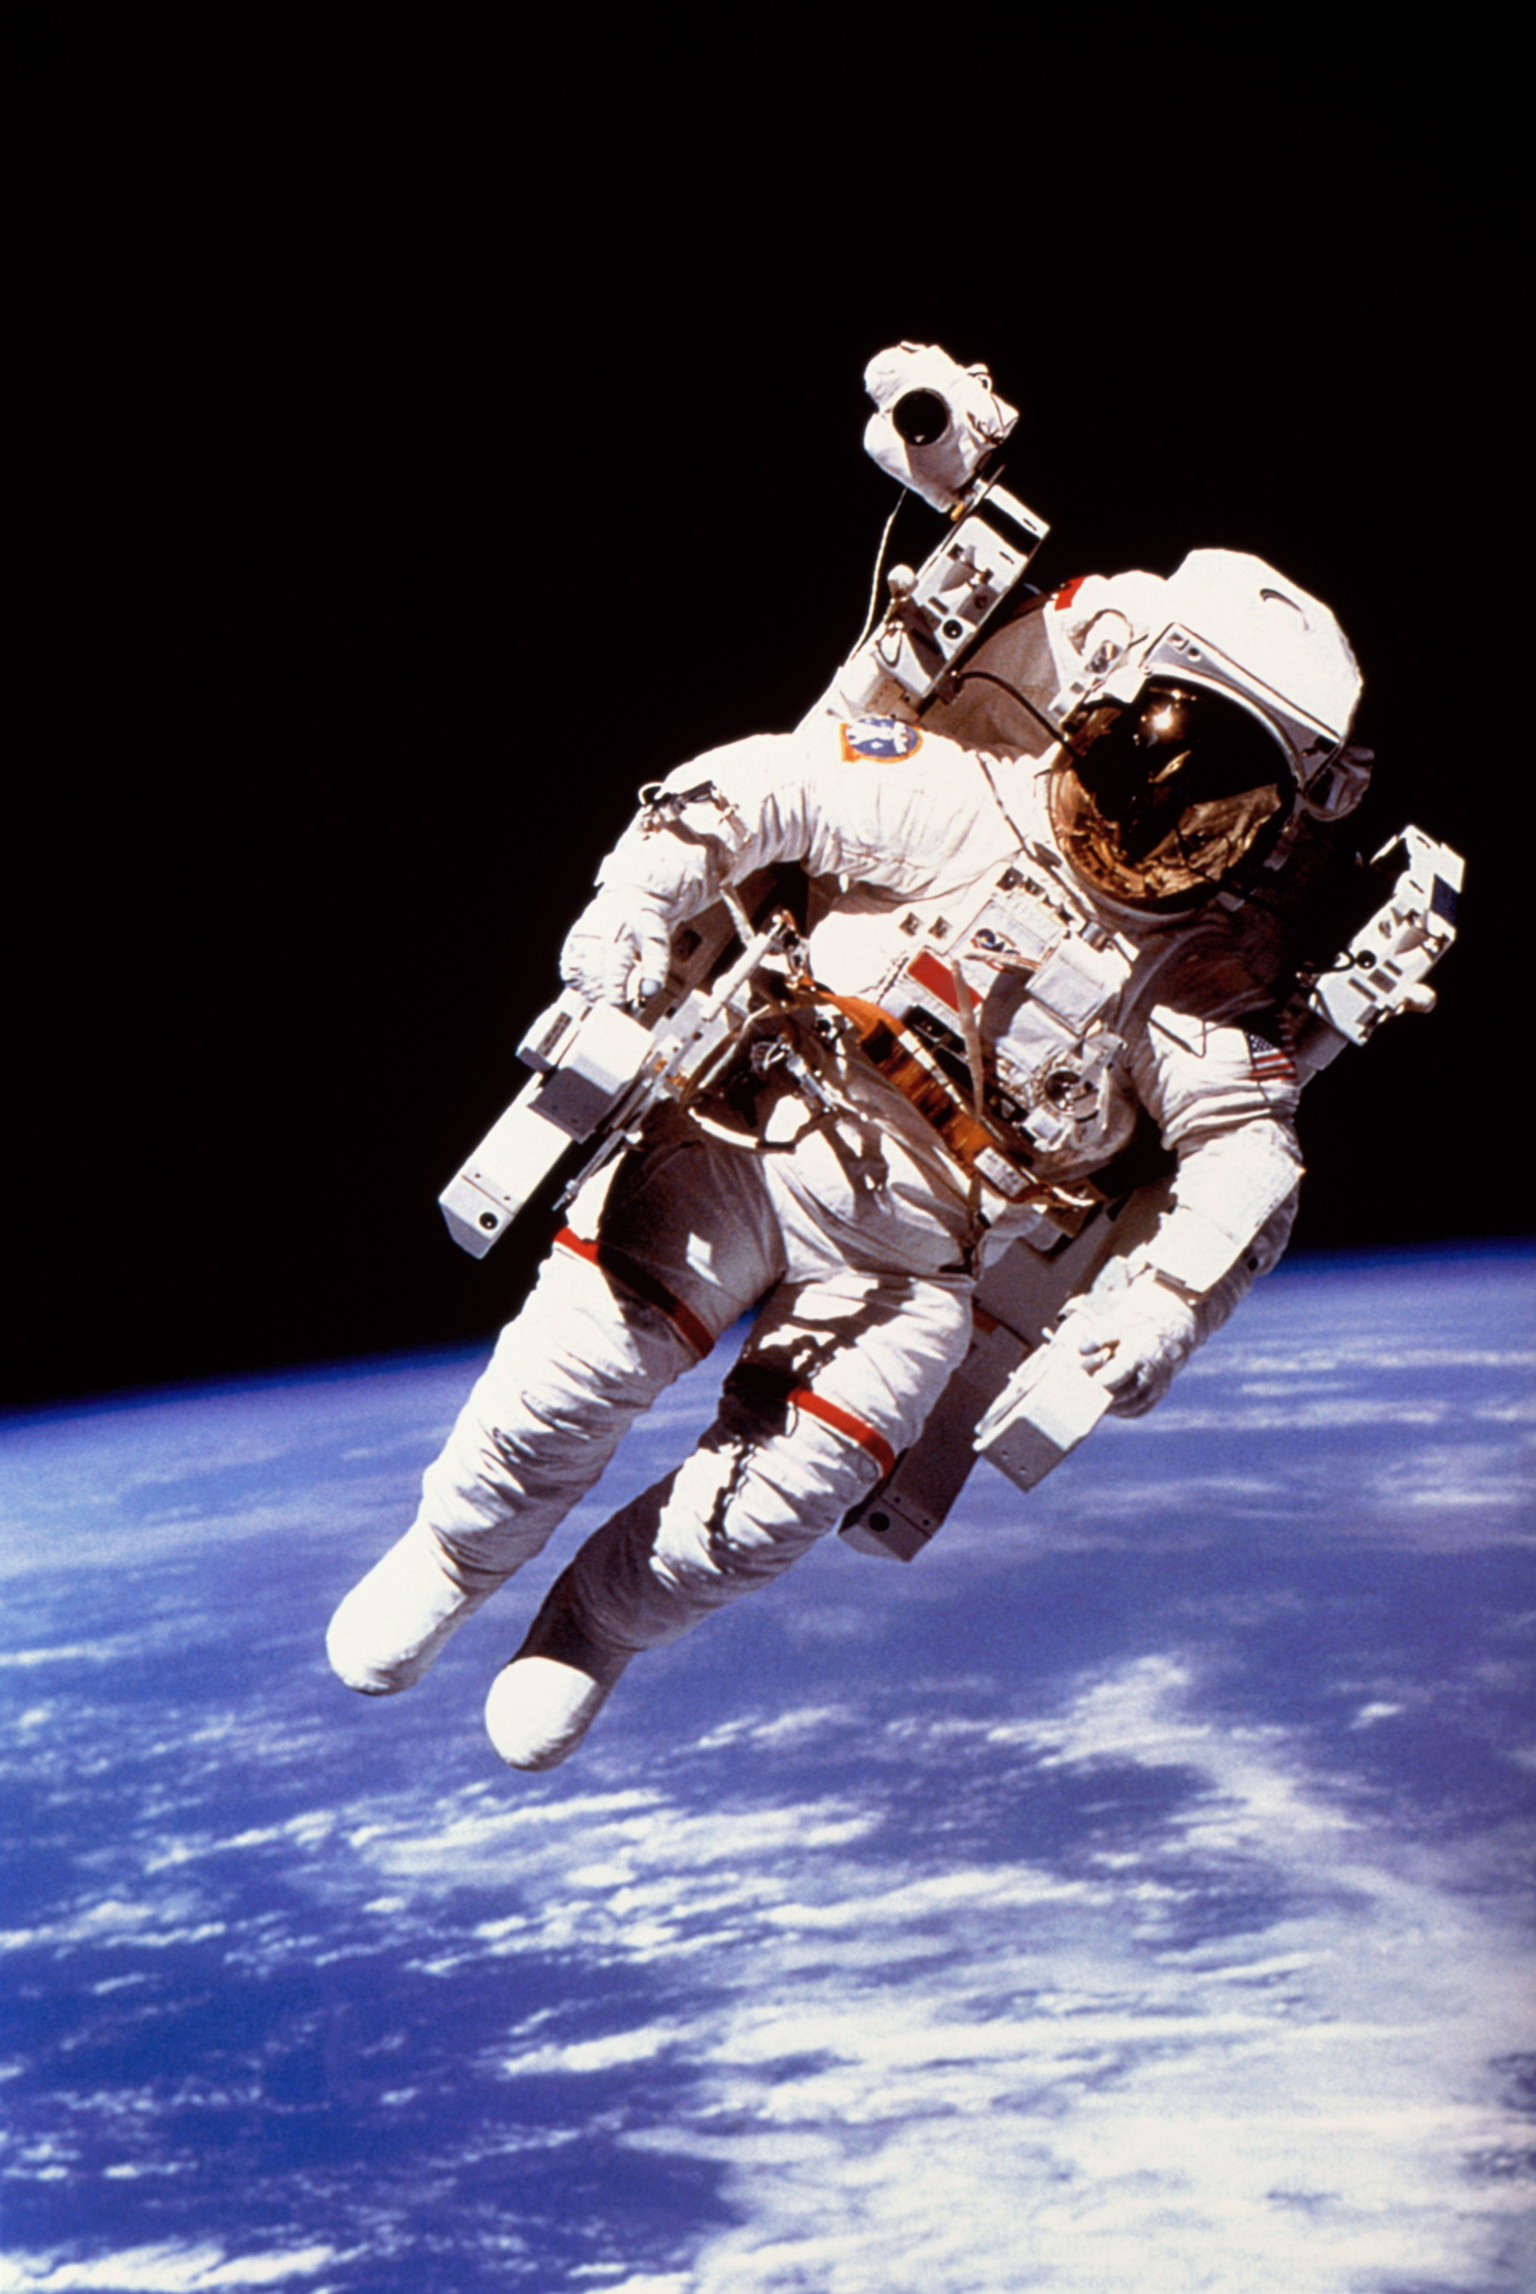 astronaut disappeared in space - photo #32